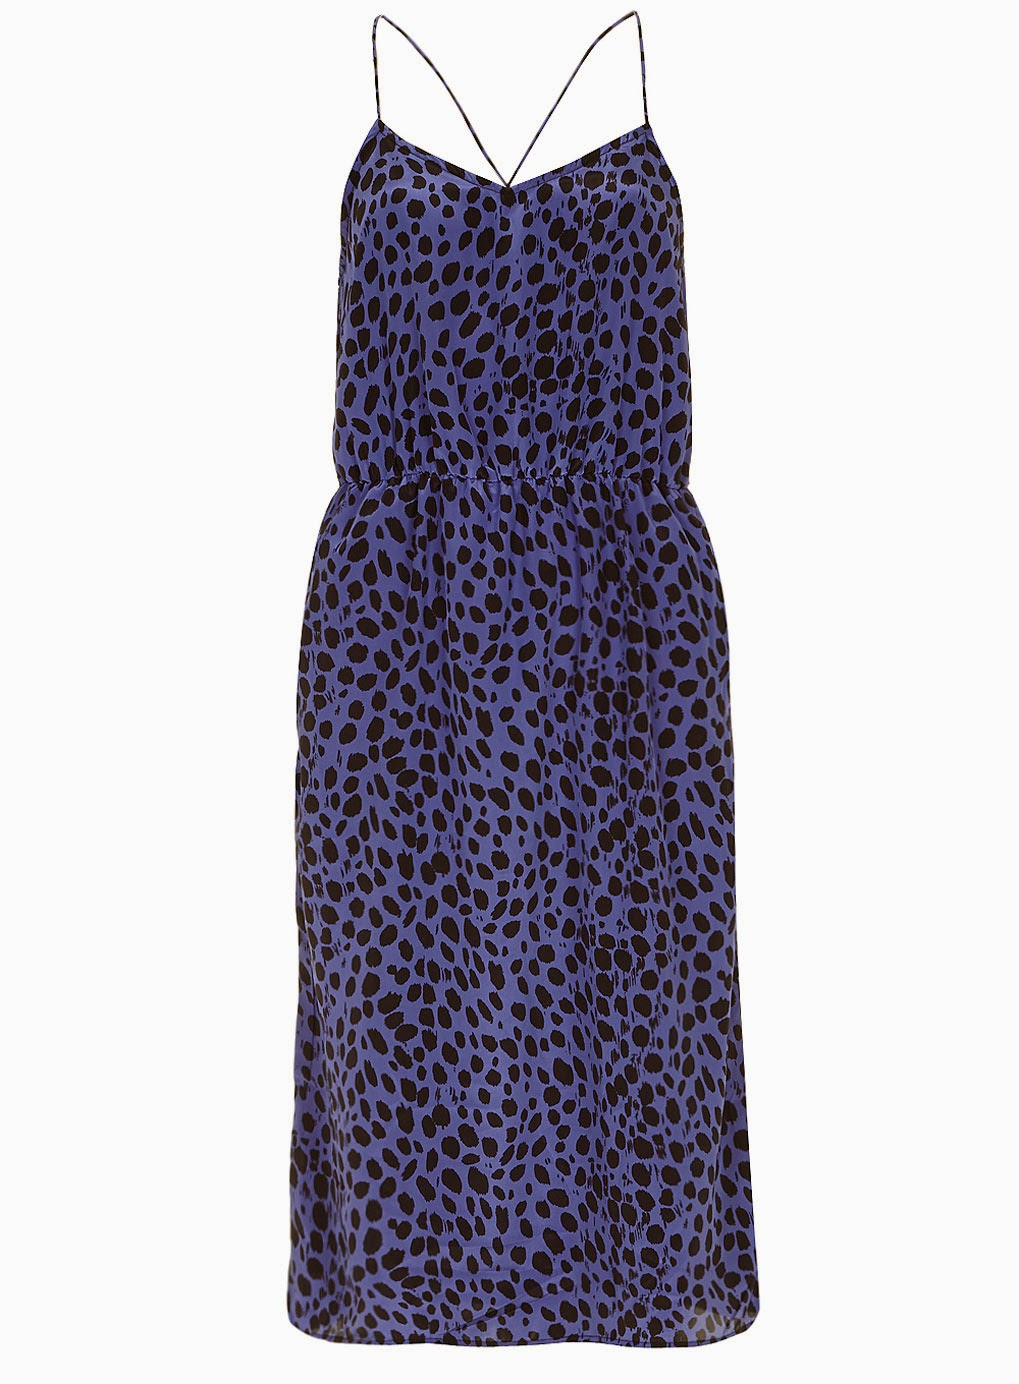 dorothy perkins spotty dress